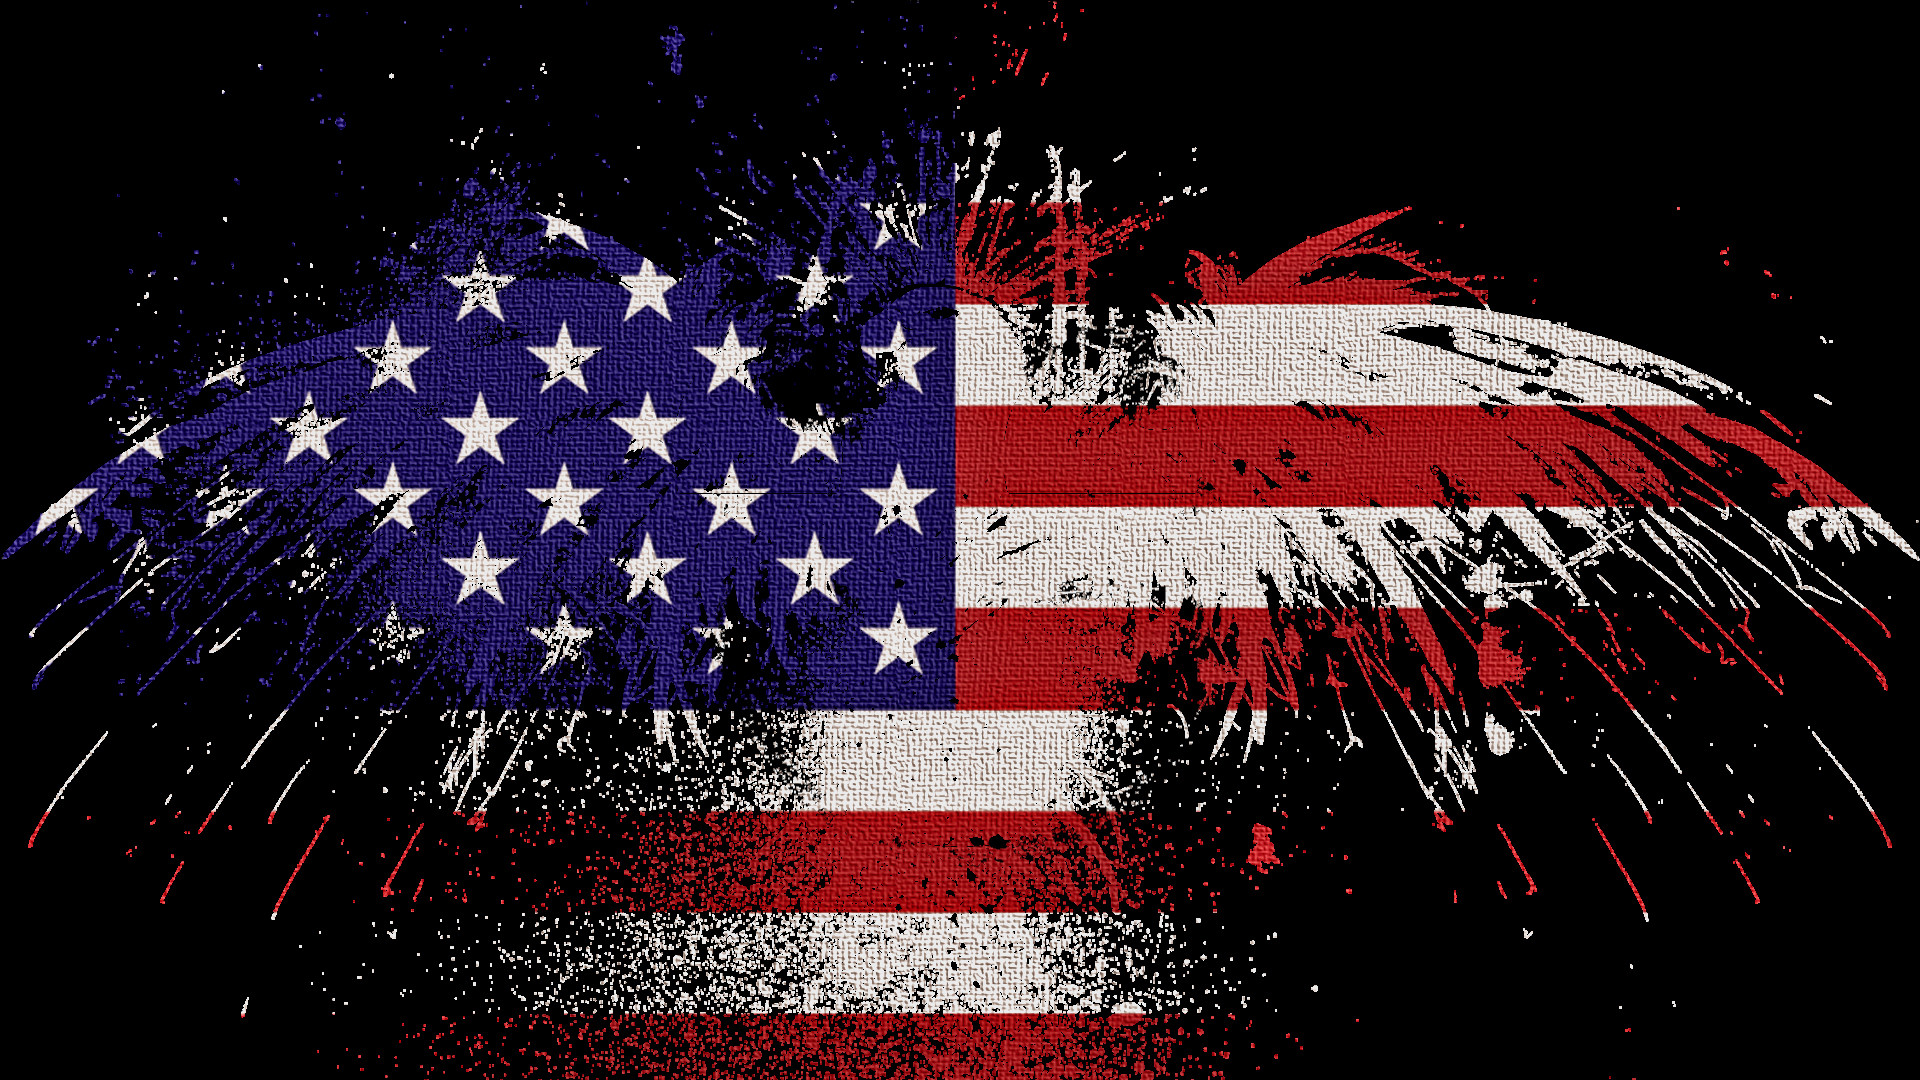 Patriotic backgrounds 28 images 1920x1080 patriotic wallpapers for september 11th voltagebd Images